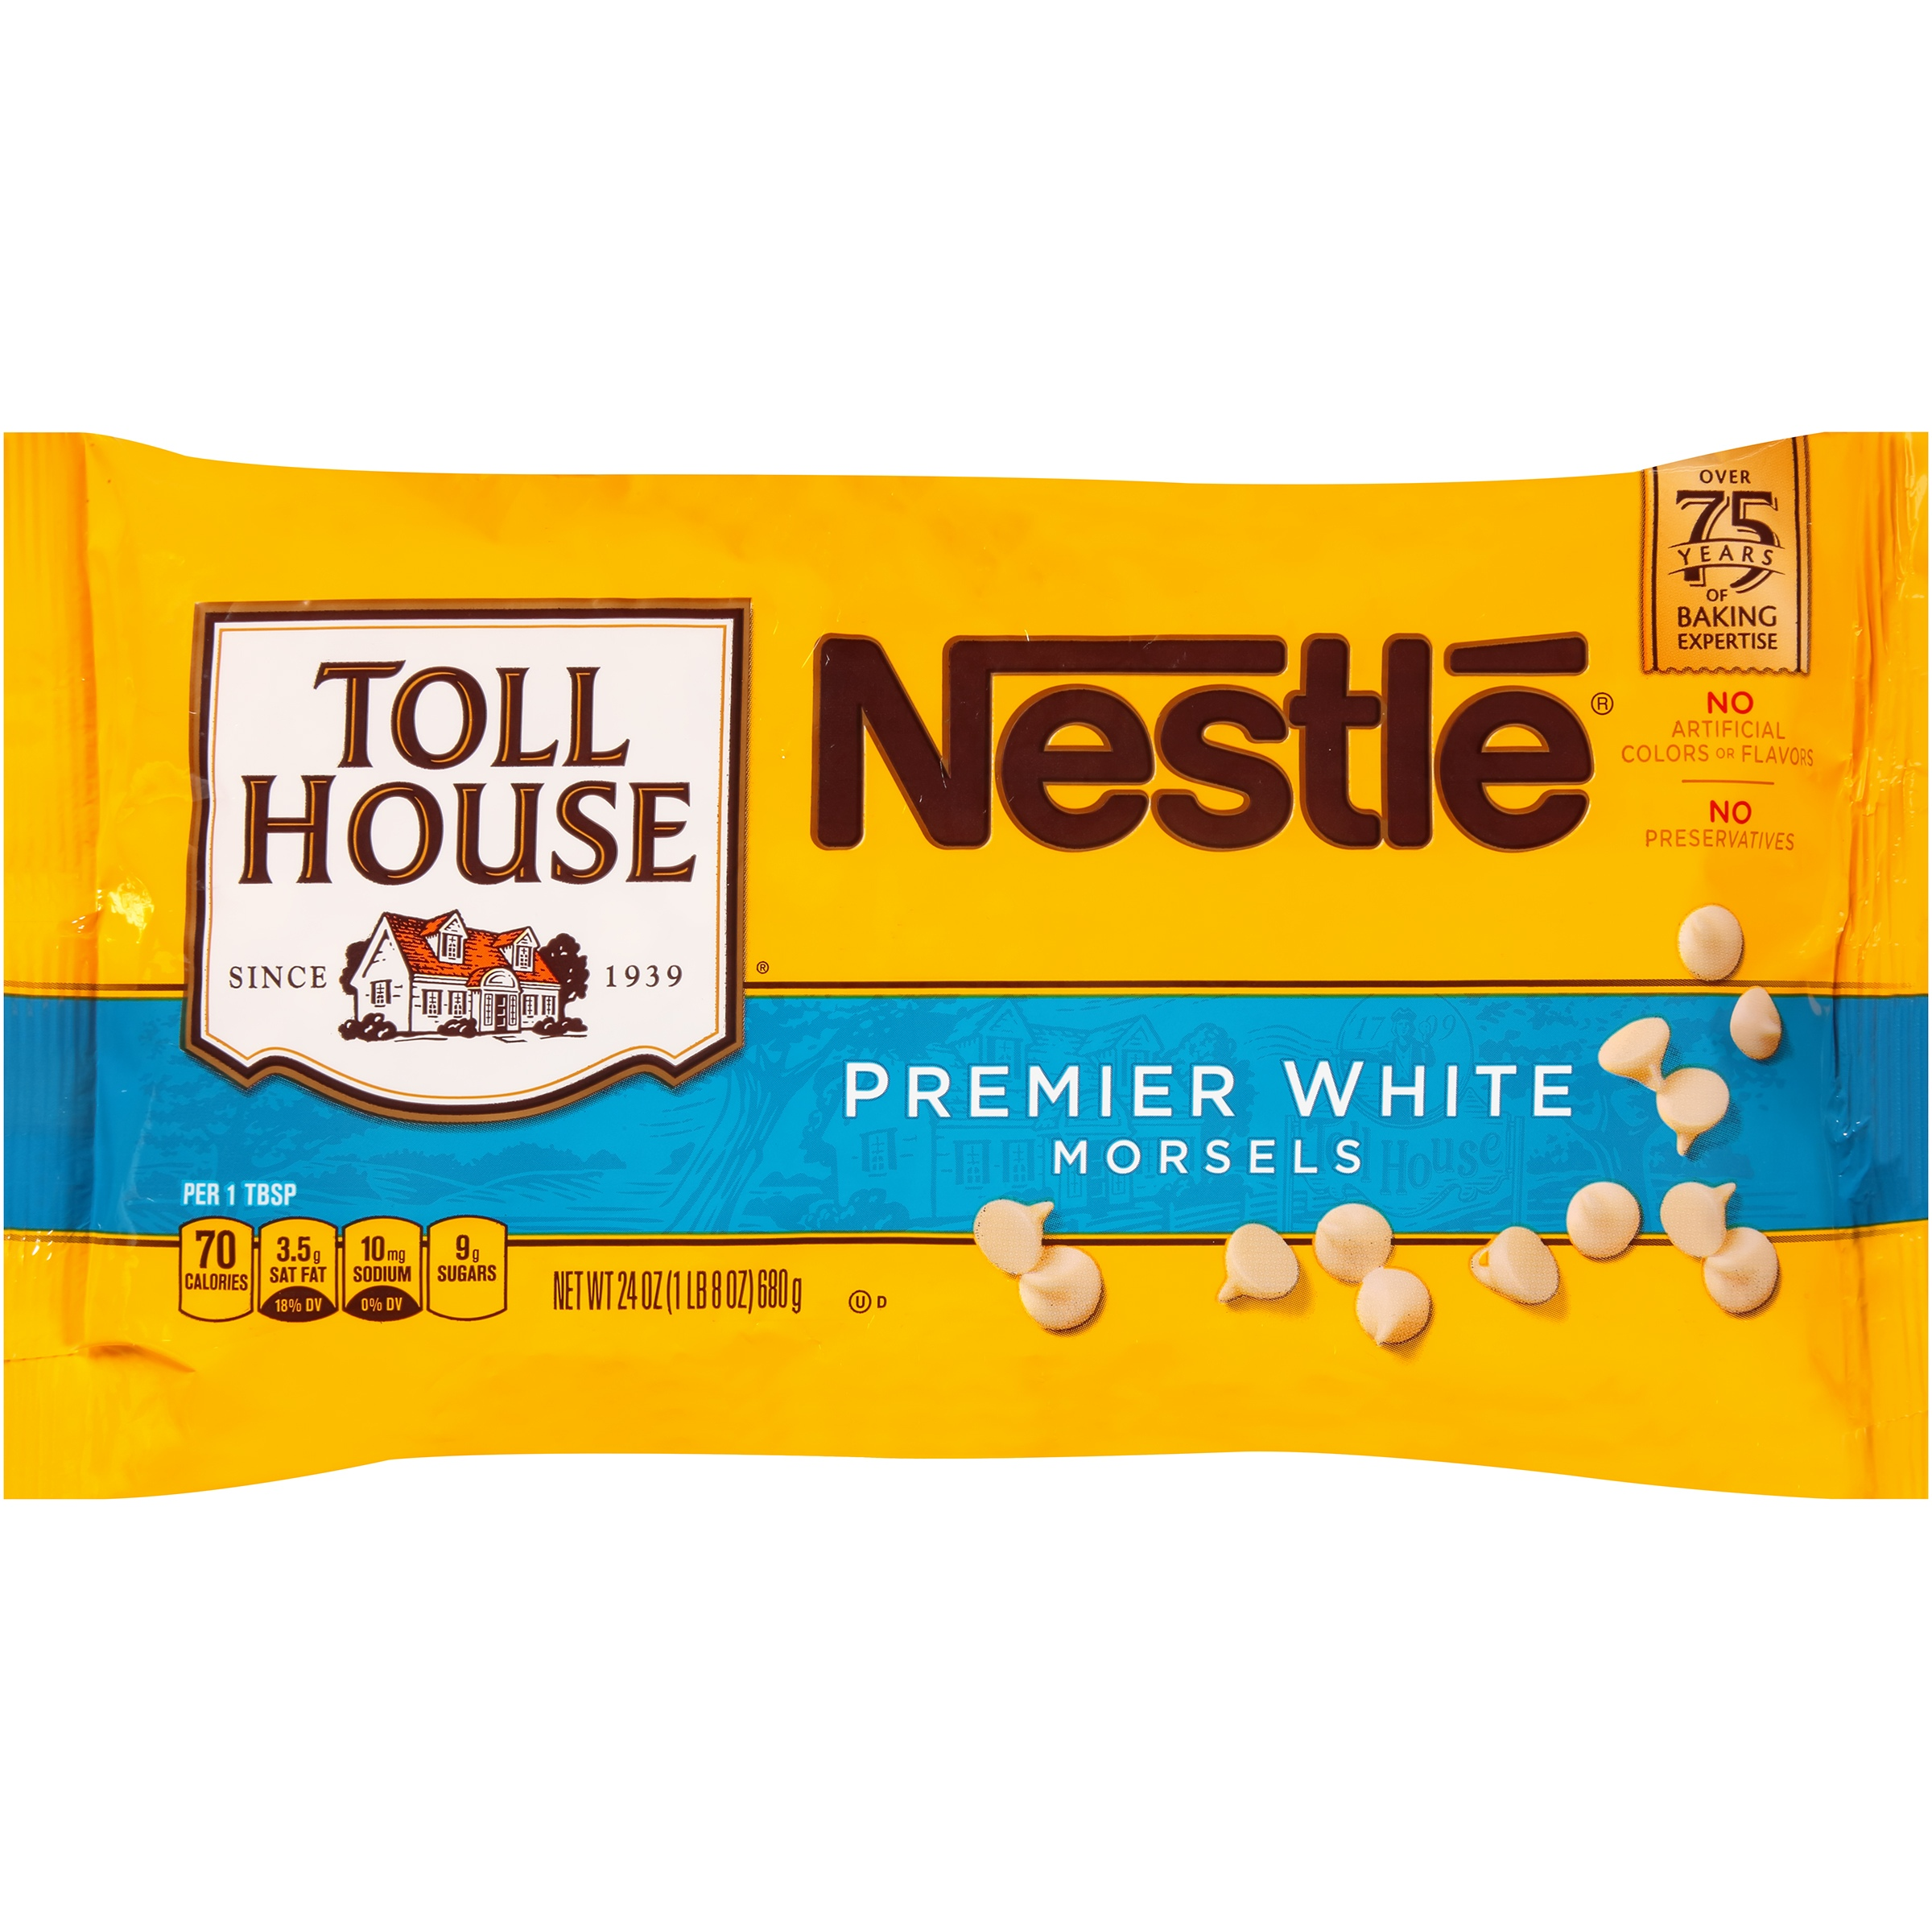 Nestlé TOLL HOUSE Premier White Morsels 24 oz. Bag